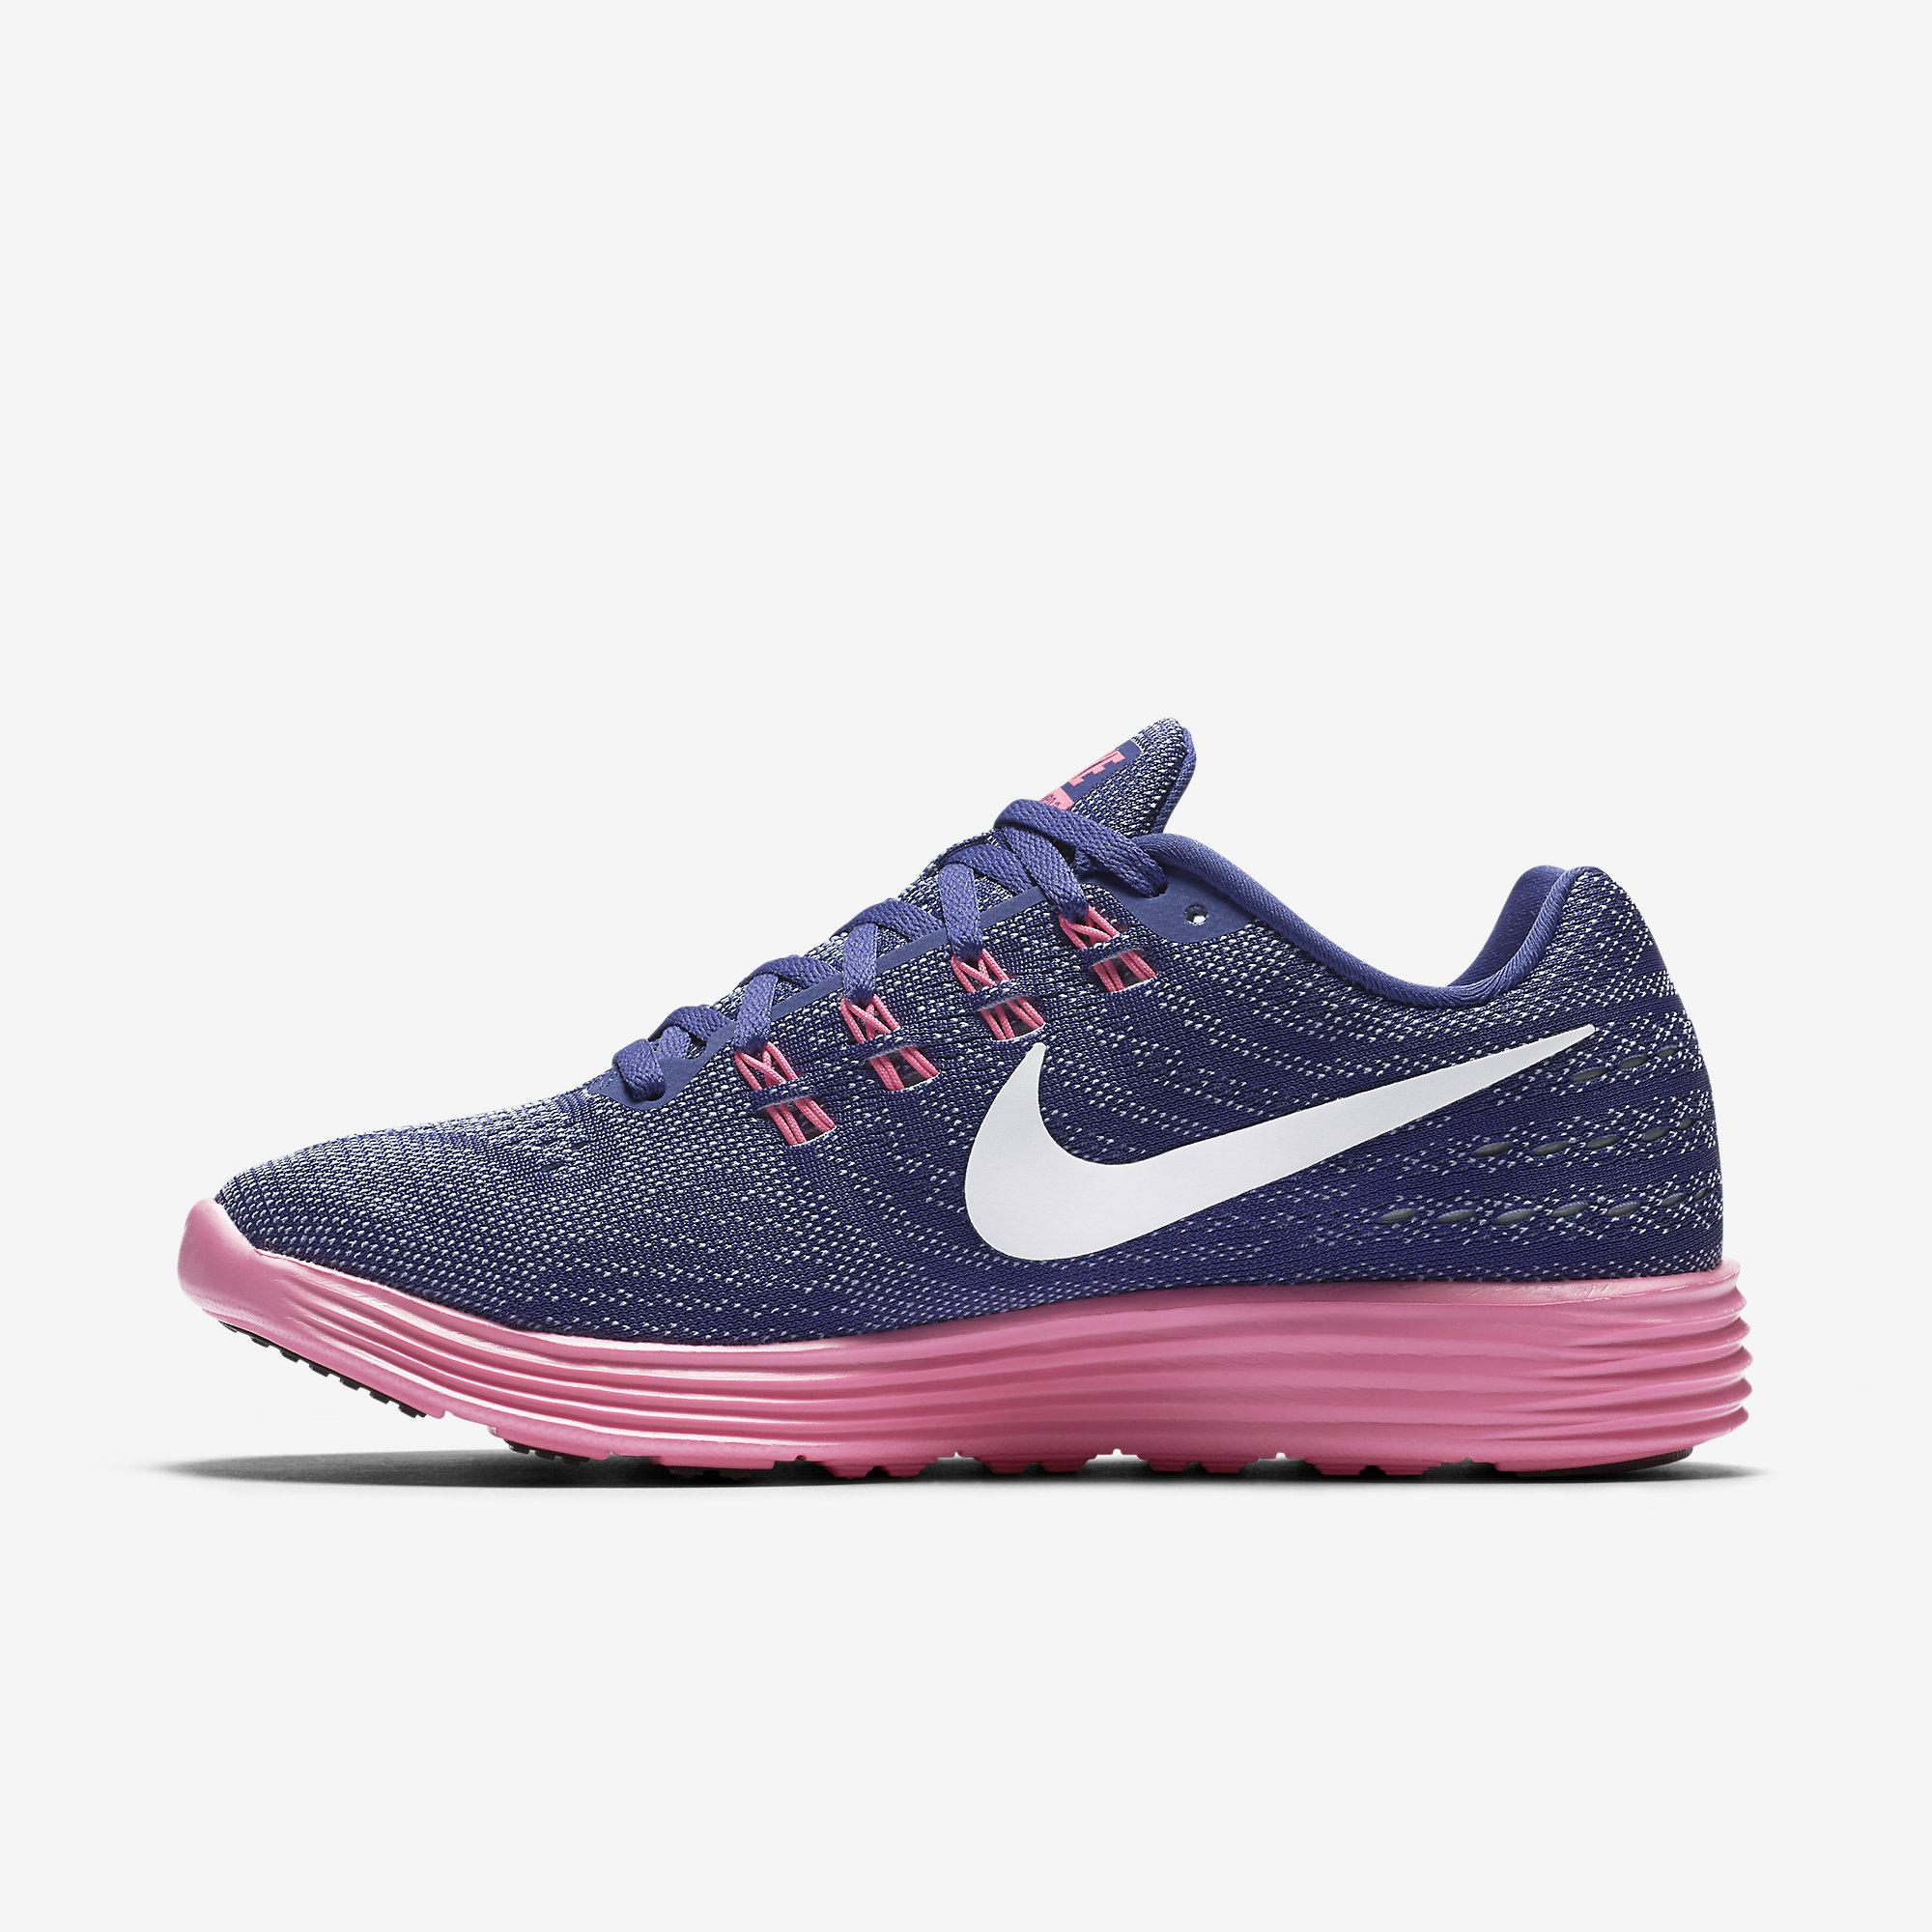 Nike Womens LunarTempo 2 Running Shoes - Purple